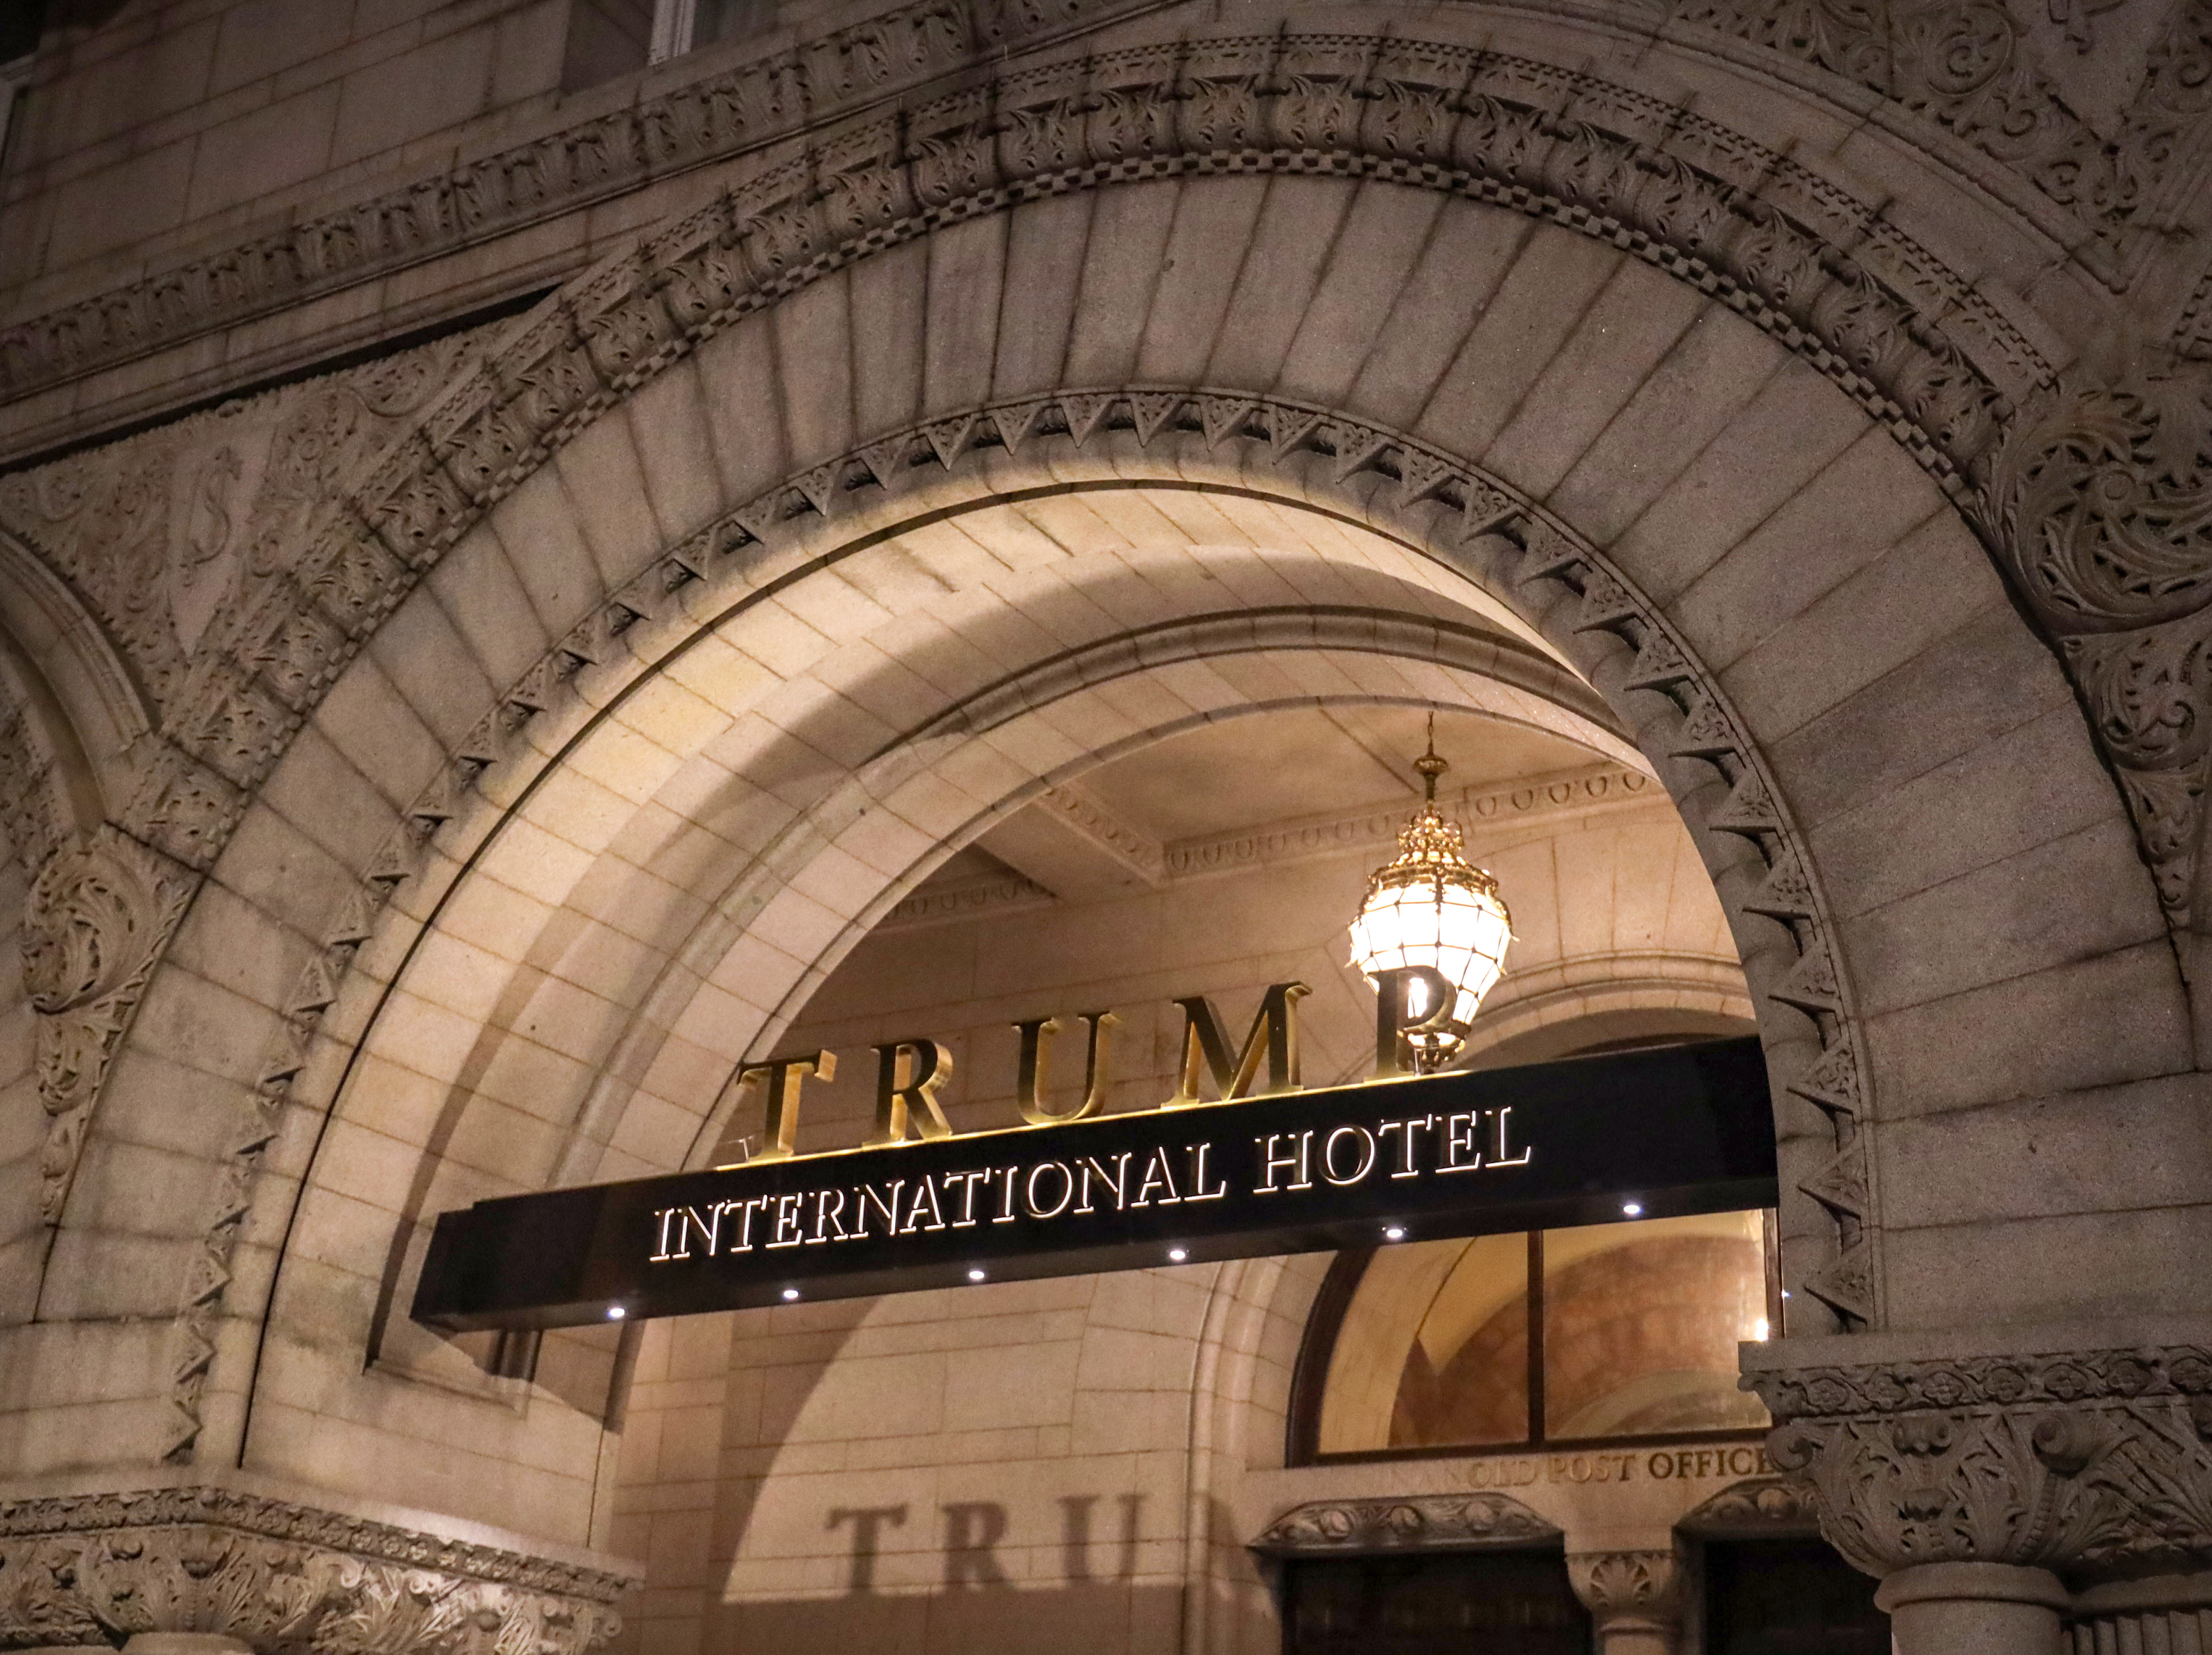 A three-judge panel ordered the dismissal of a lawsuit that argued President Trump was violating the emoluments clauses of the Constitution through his business empire.